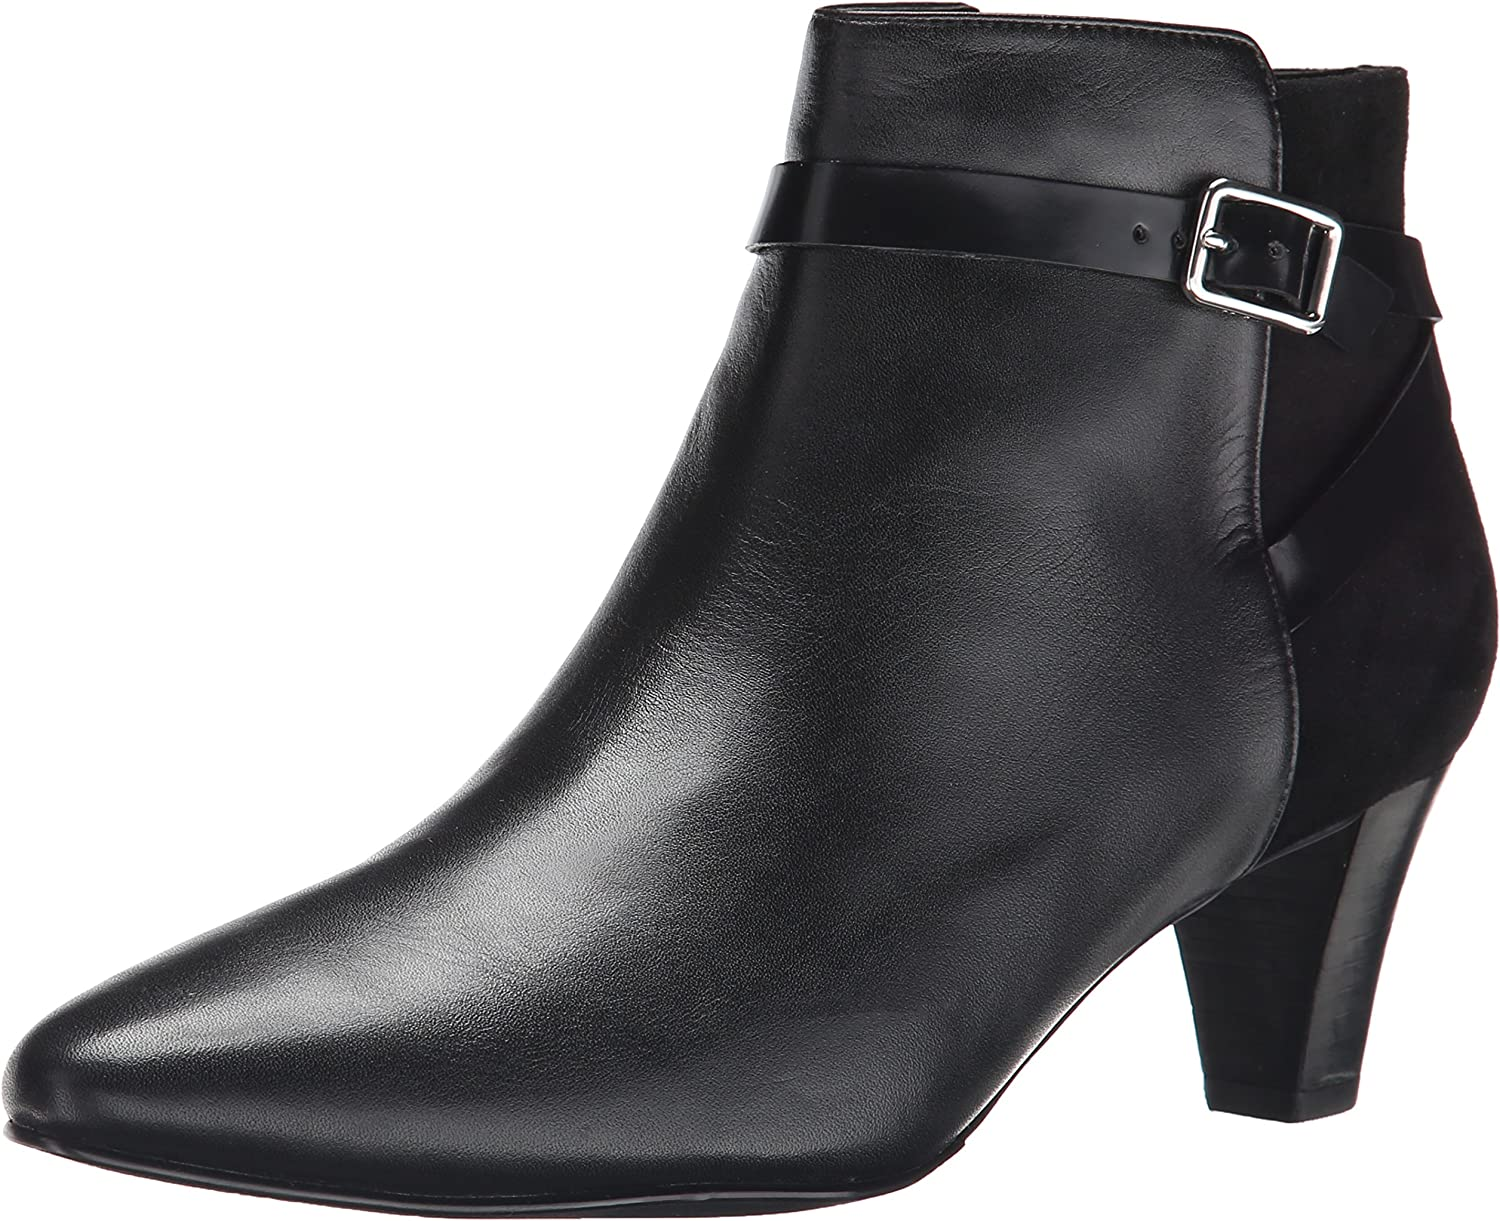 6db558f463c4f Haan Women's Sylvan Ankle Bootie Boot Cole nqfcdl1617-New Shoes ...